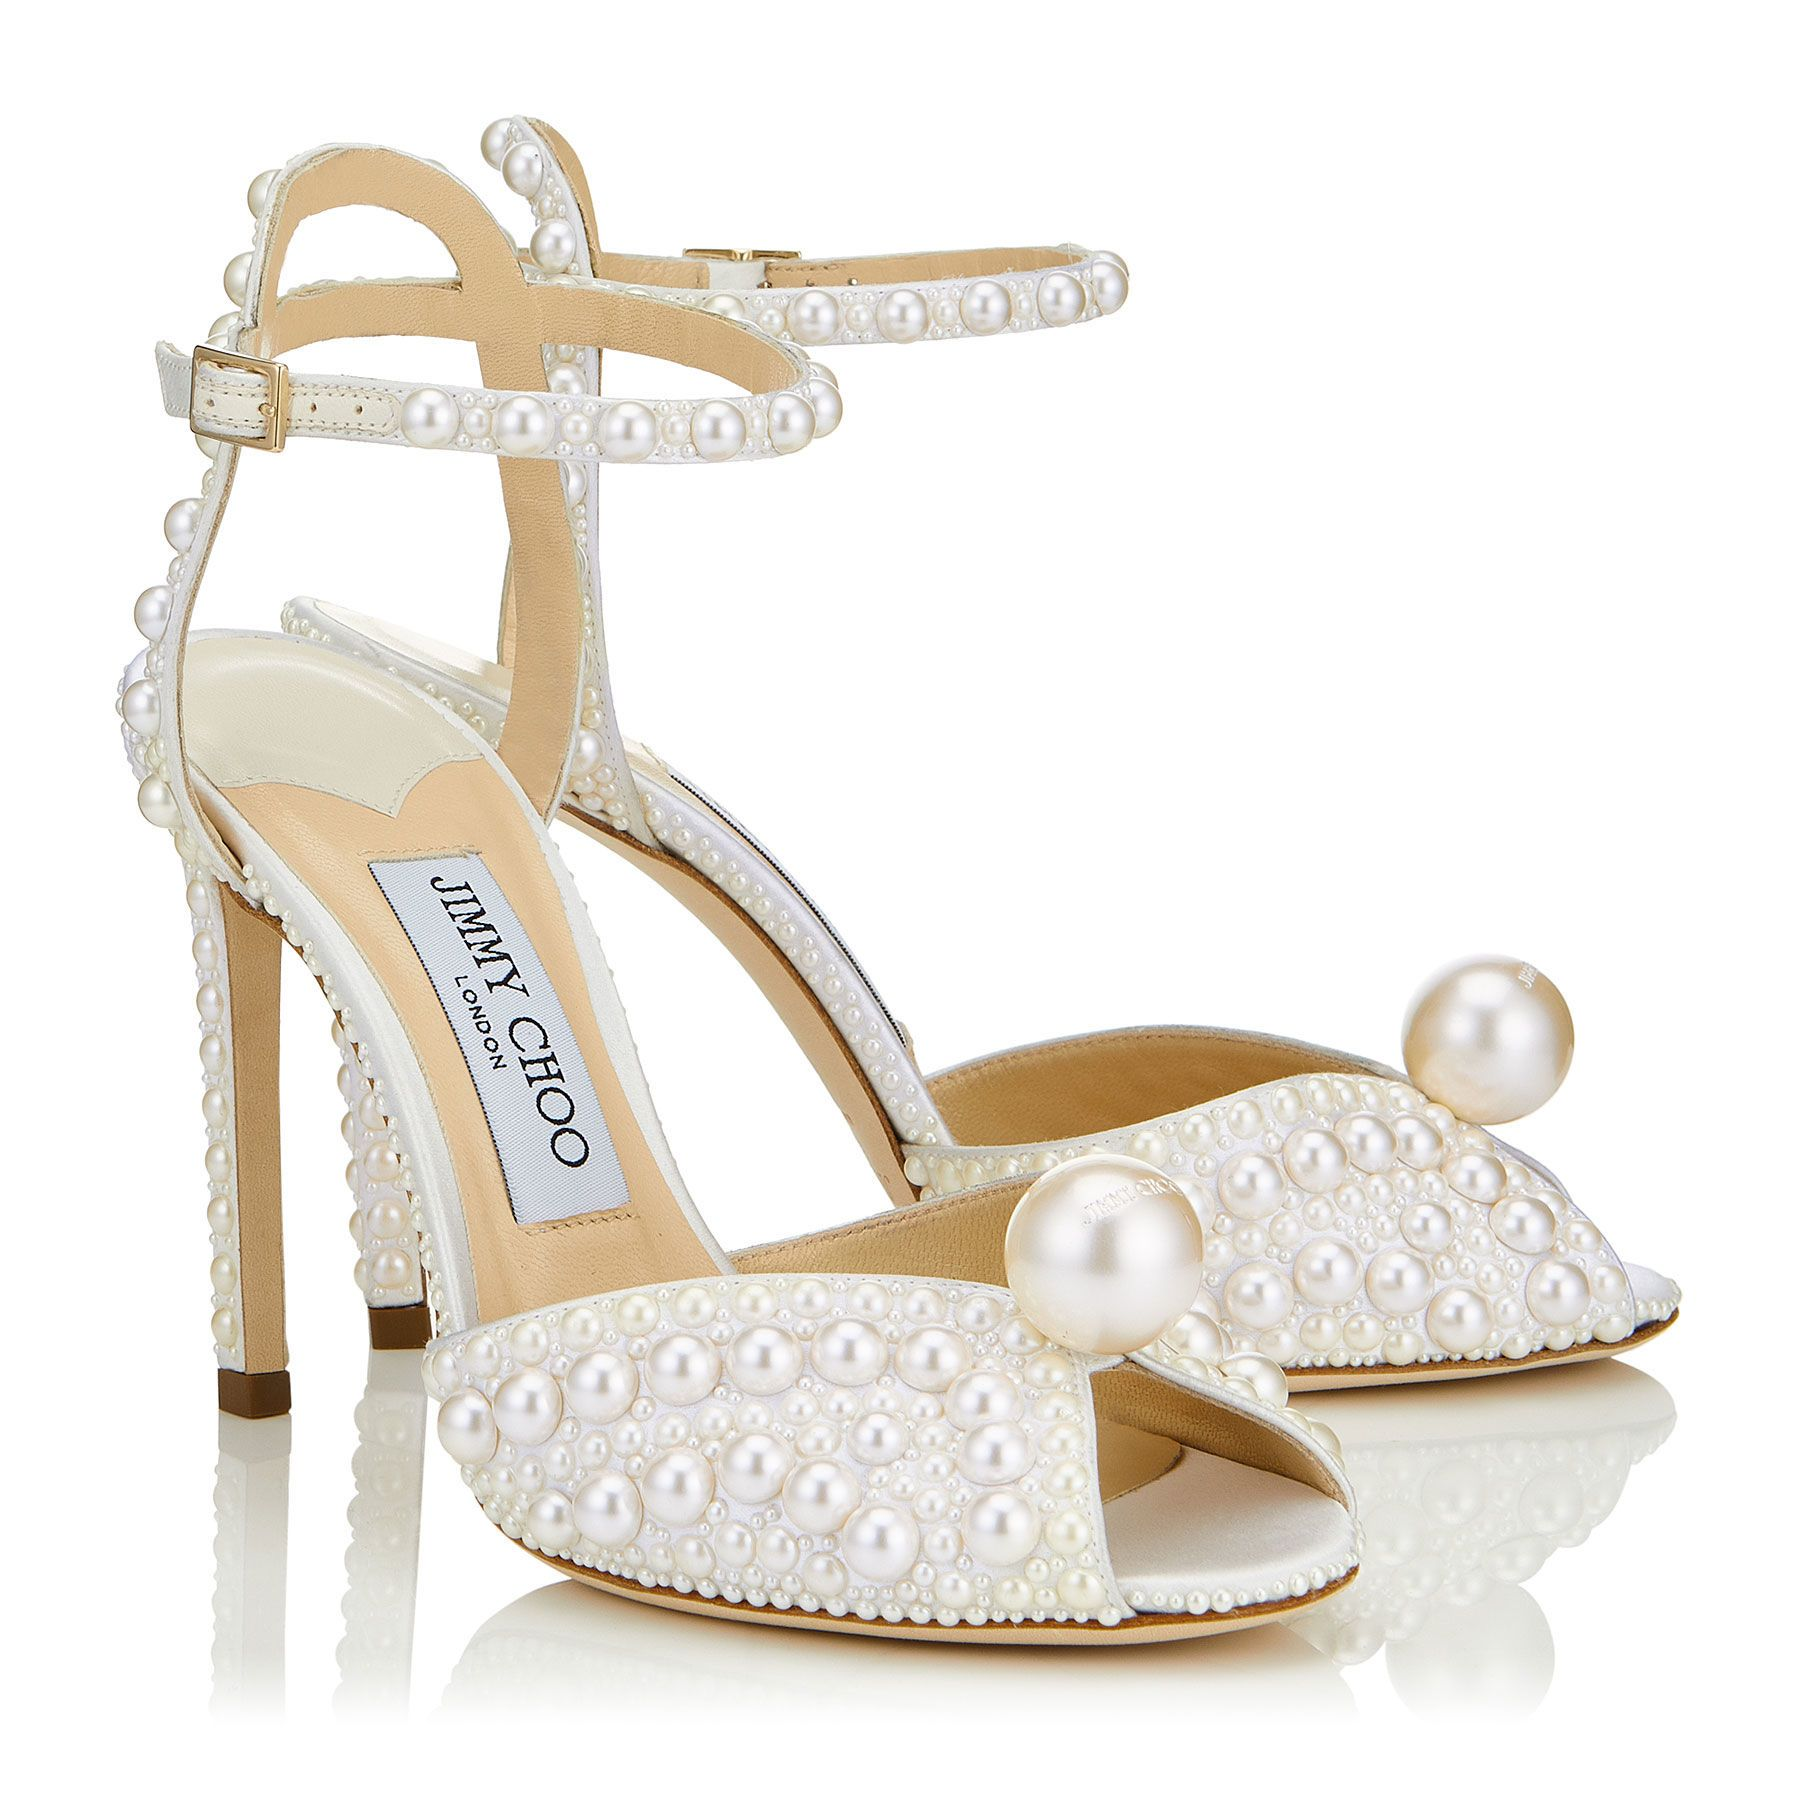 Sacora 100 In 2021 Bride Shoes Pearl Shoes Jimmy Choo Bridal